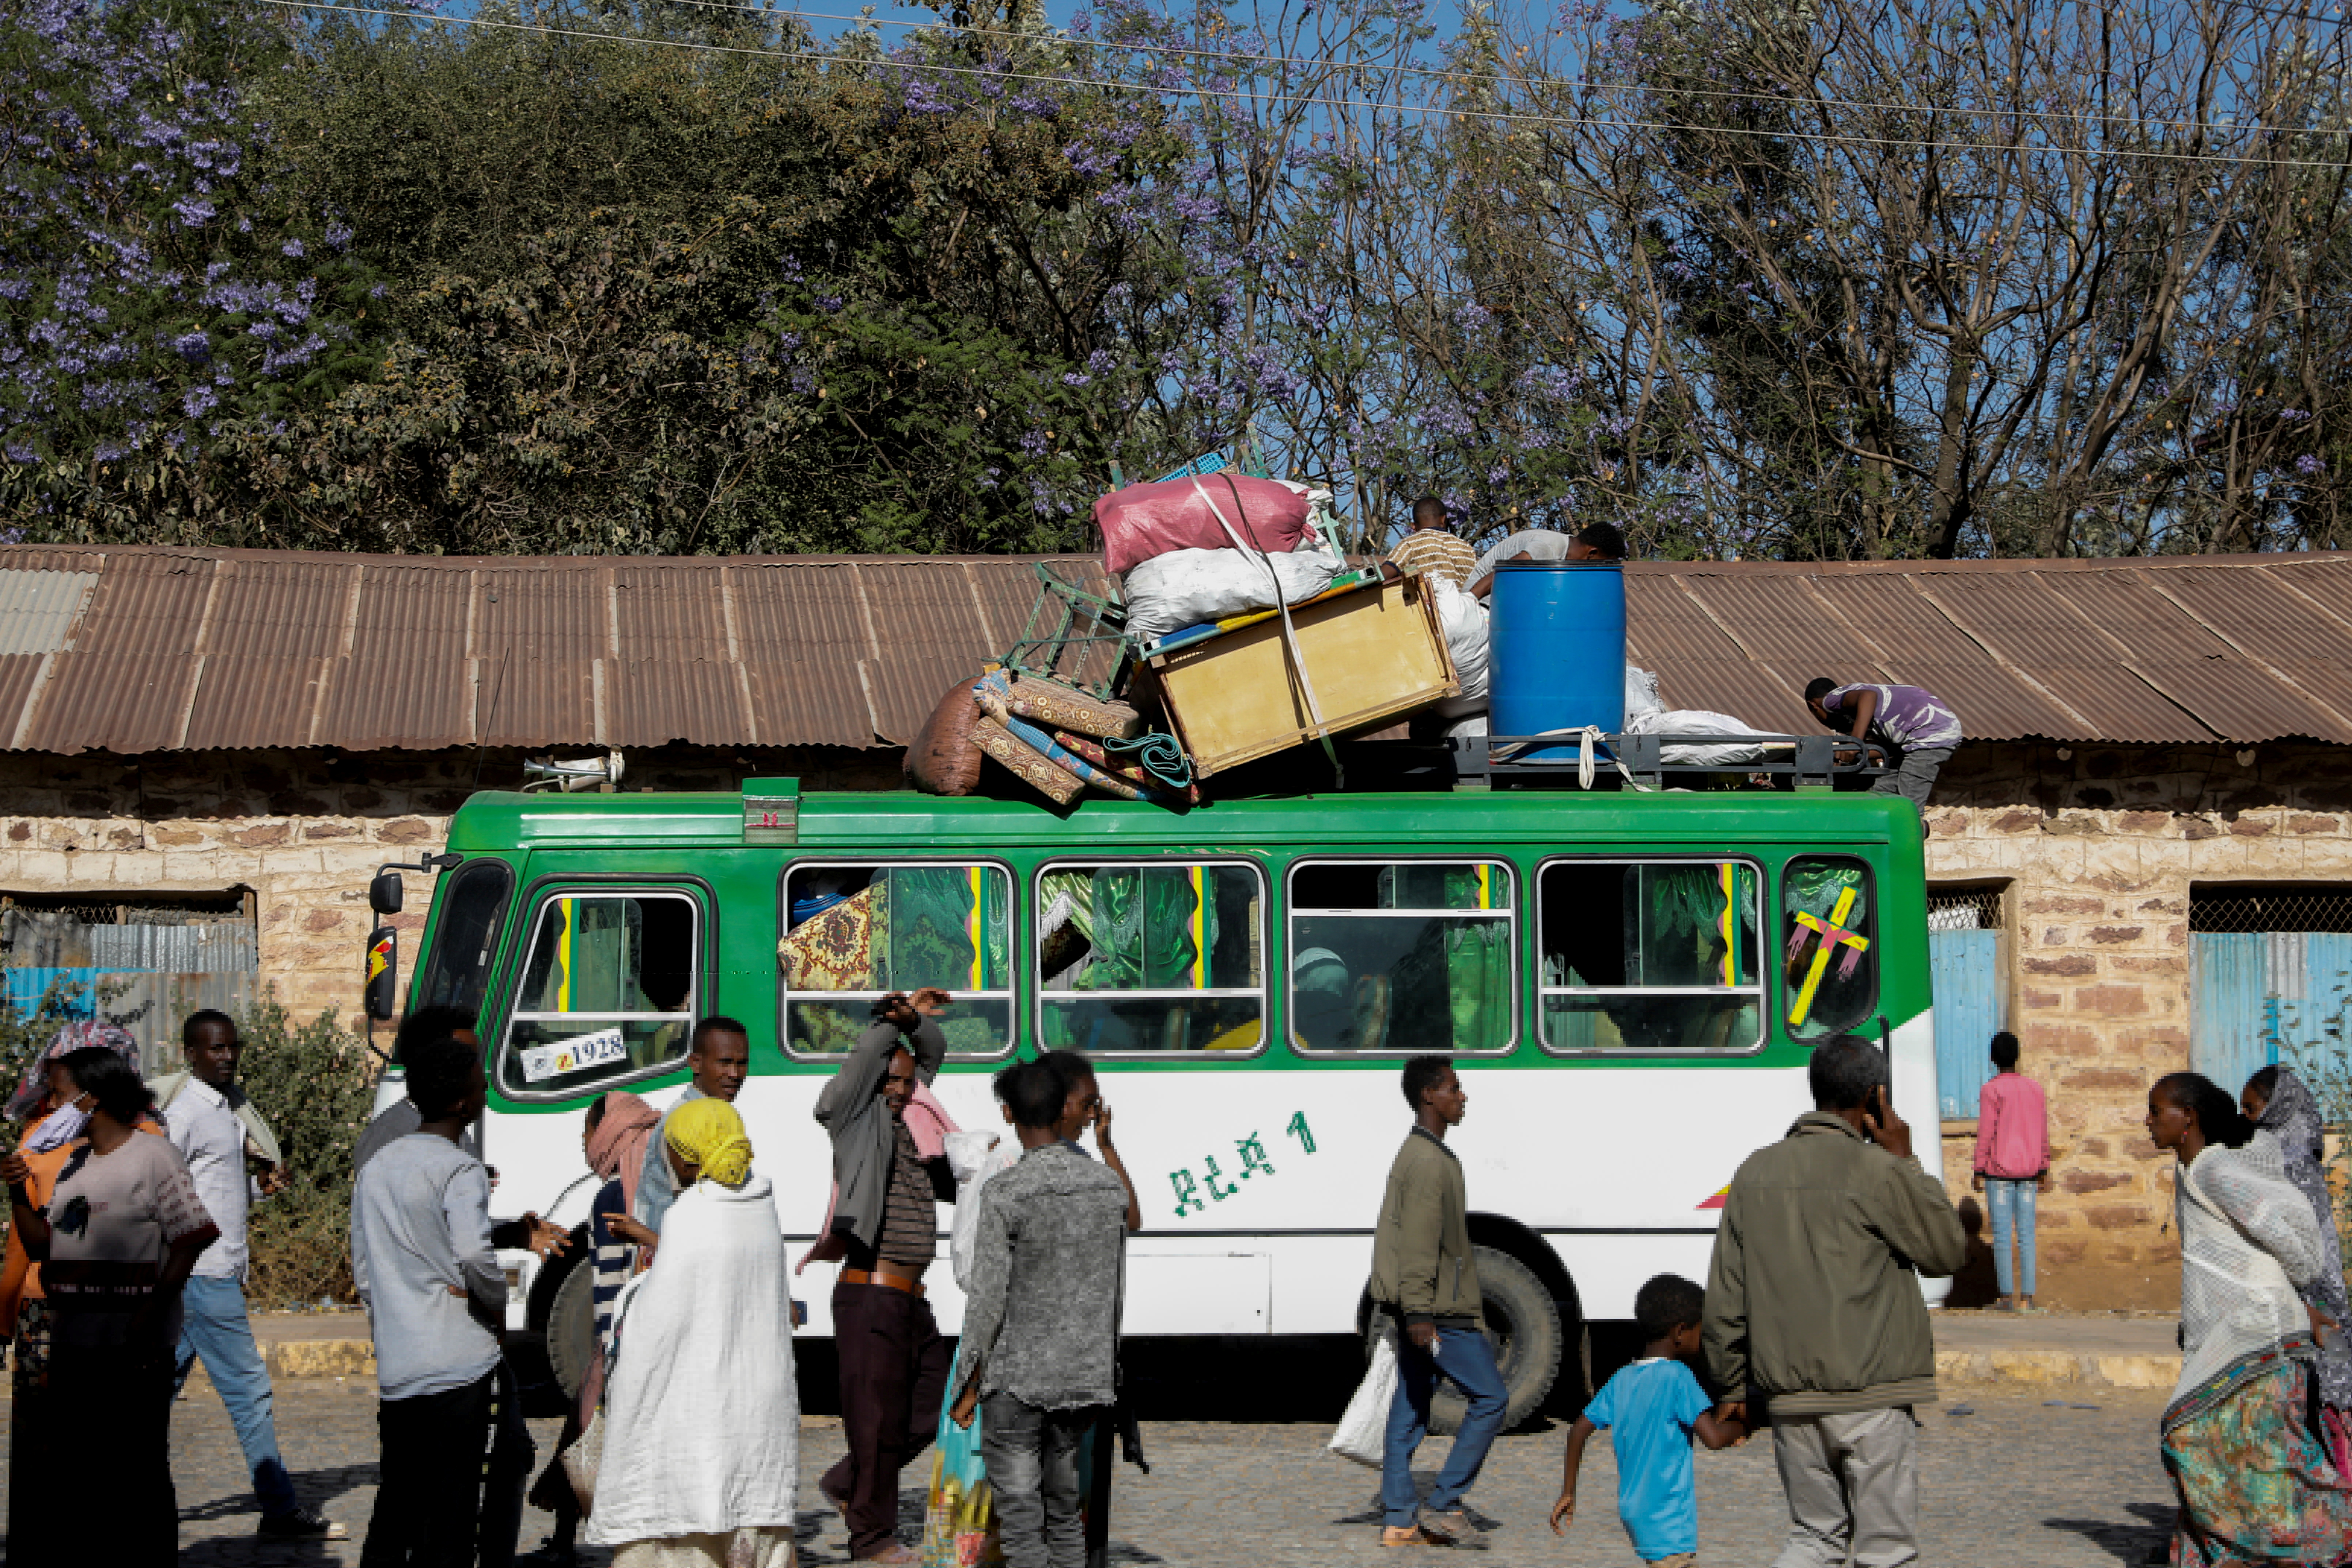 A bus carrying displaced people arrives at the Tsehaye primary school, which was turned into a temporary shelter for people displaced by conflict, in the town of Shire, Tigray region, Ethiopia, March 14, 2021. REUTERS/Baz Ratner/File Photo